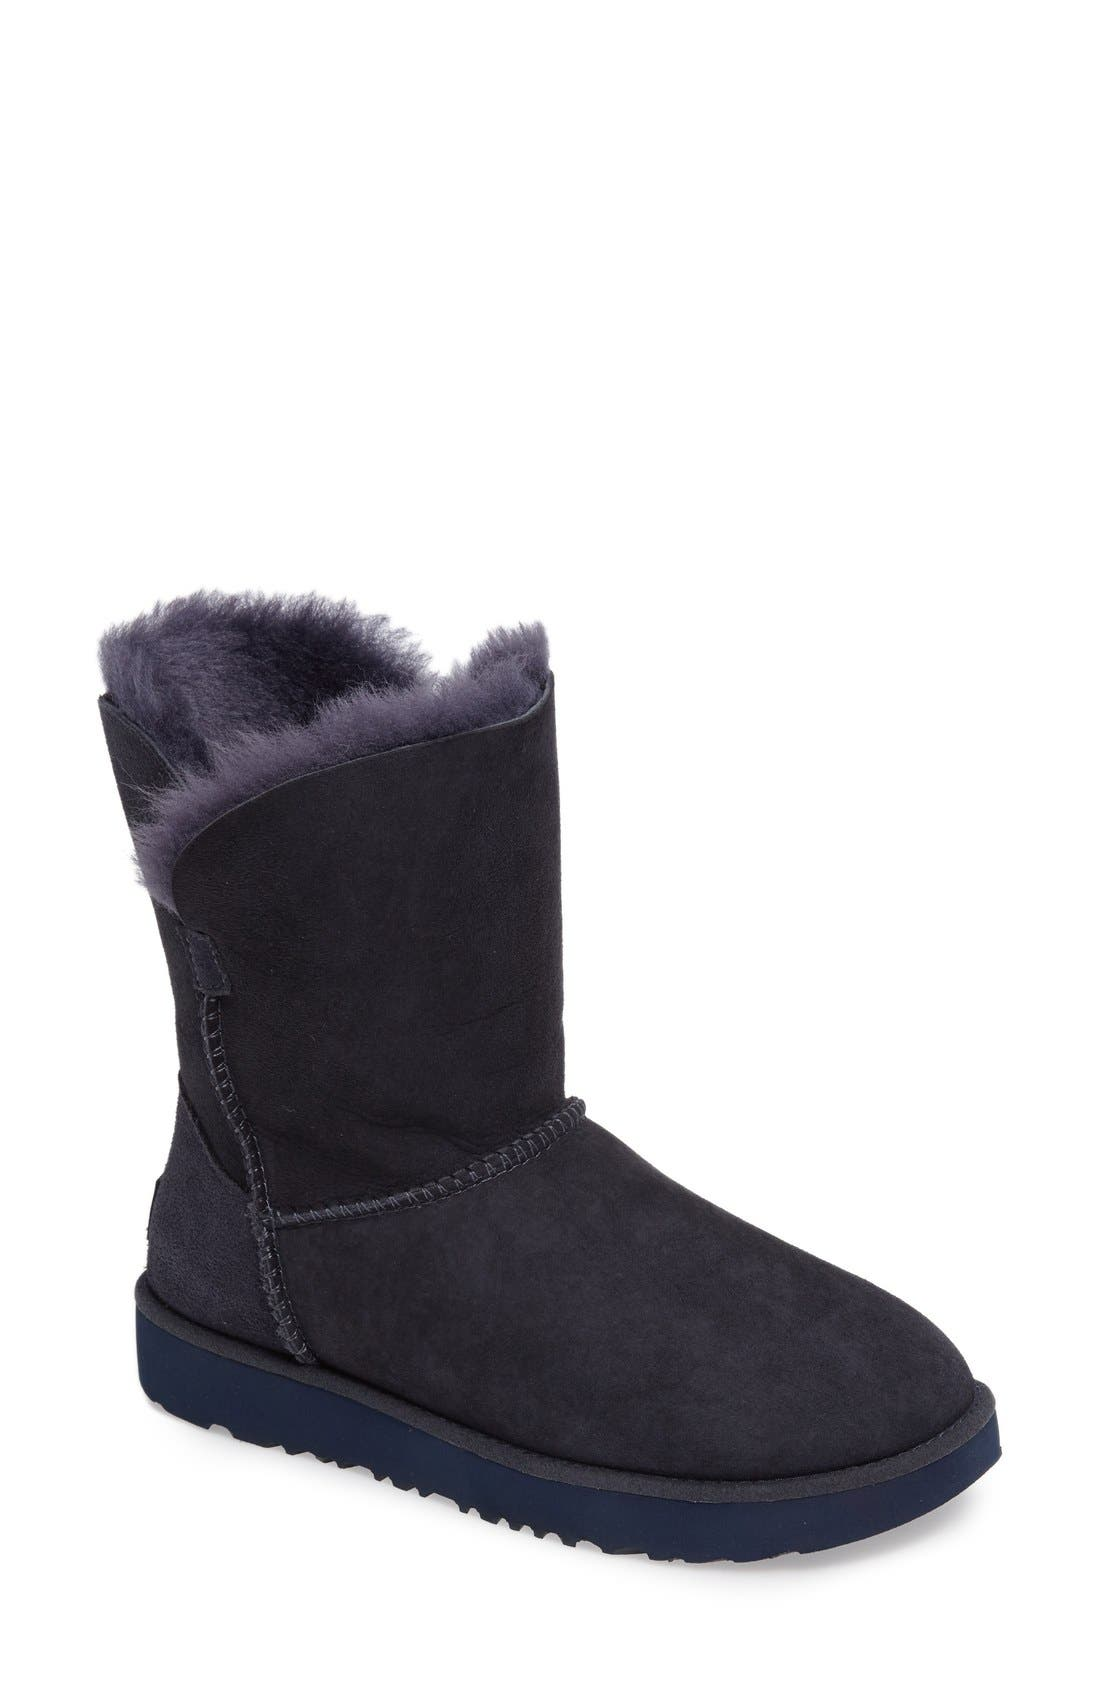 Alternate Image 1 Selected - UGG® Classic Cuff Short Boot (Women)